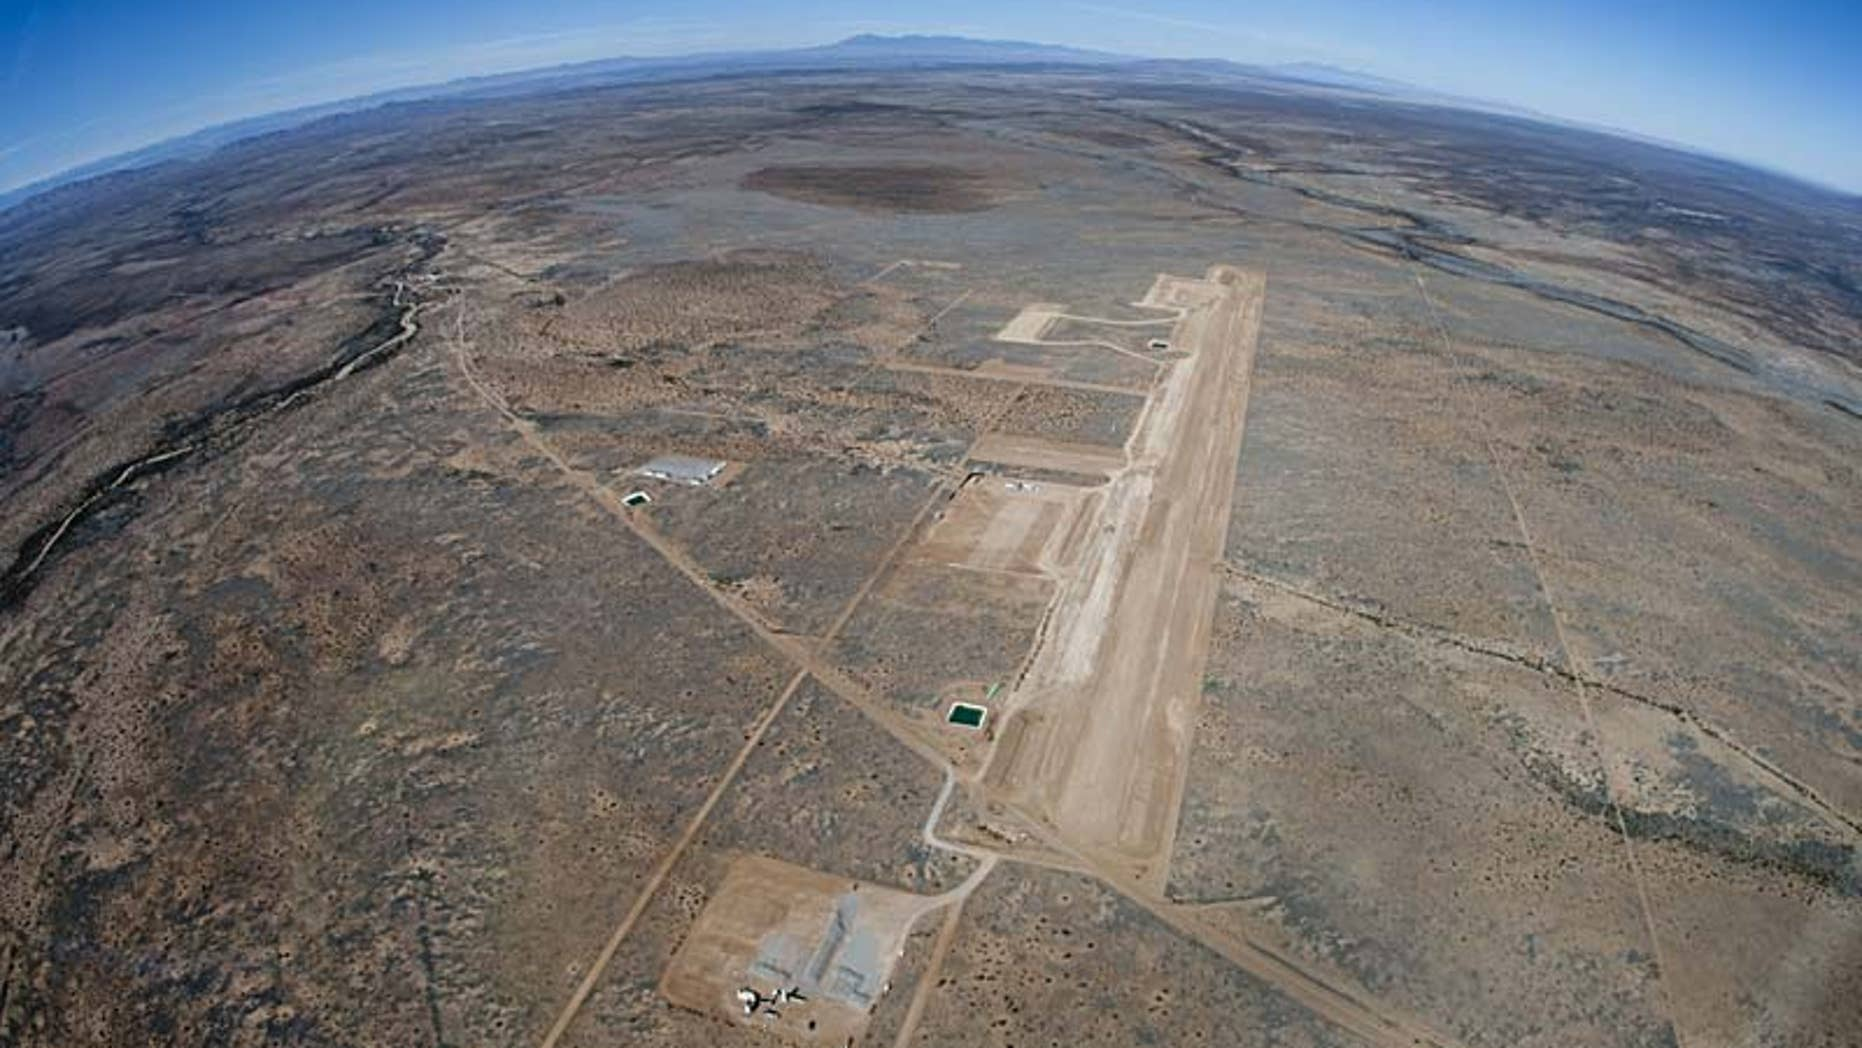 A flyover of New Mexico's Spaceport America with runway construction underway.